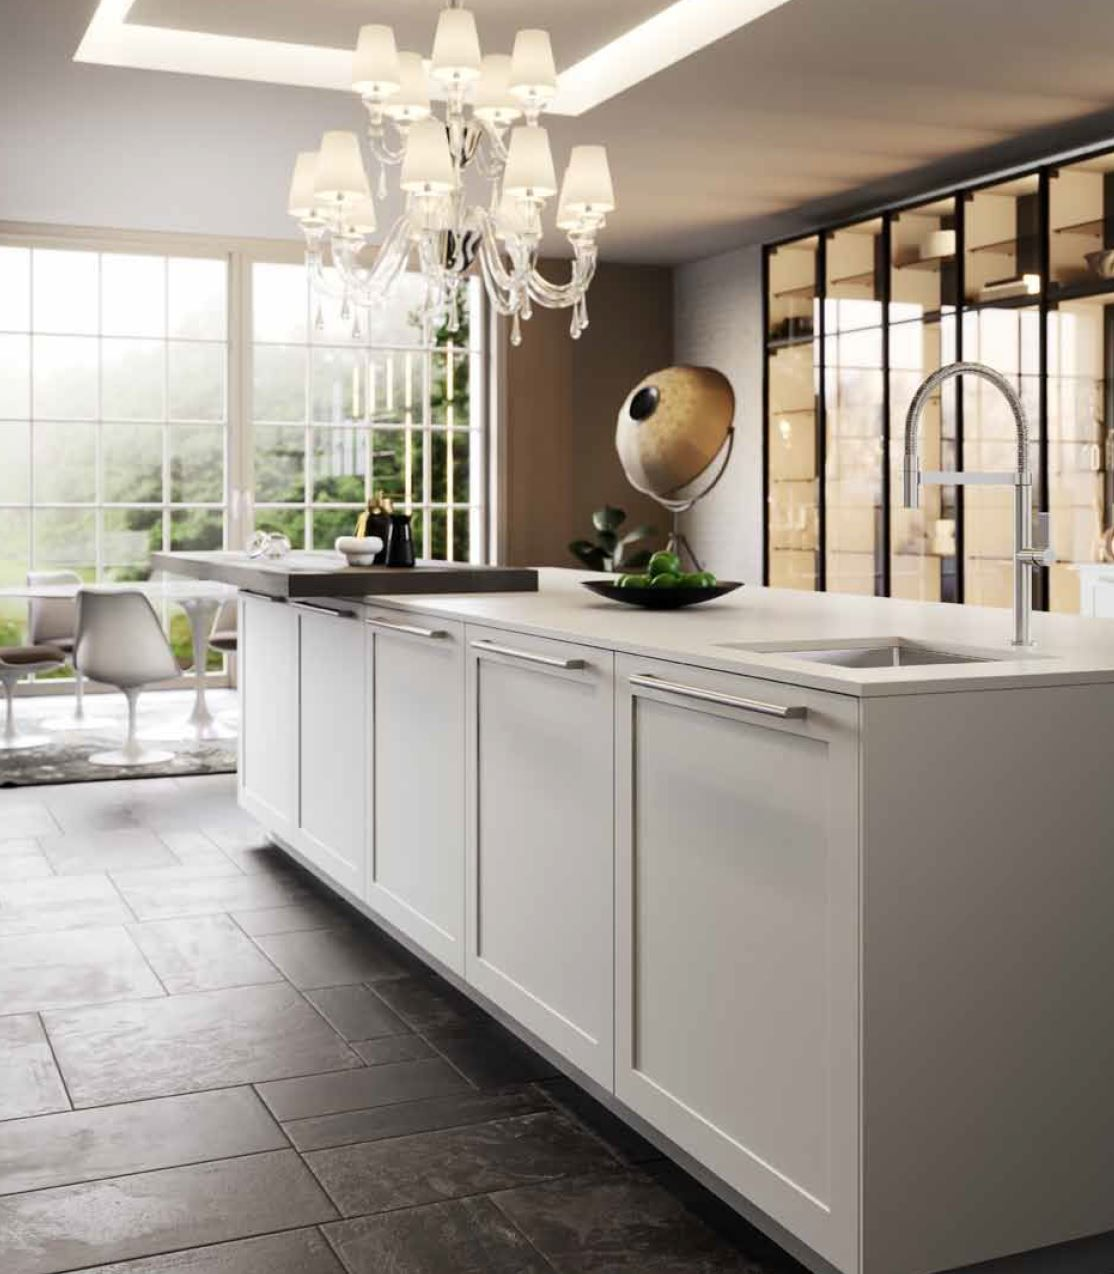 THE NEW TRANSITIONAL KITCHEN - AK GALLERY BY #ARRITAL CUCINE ...